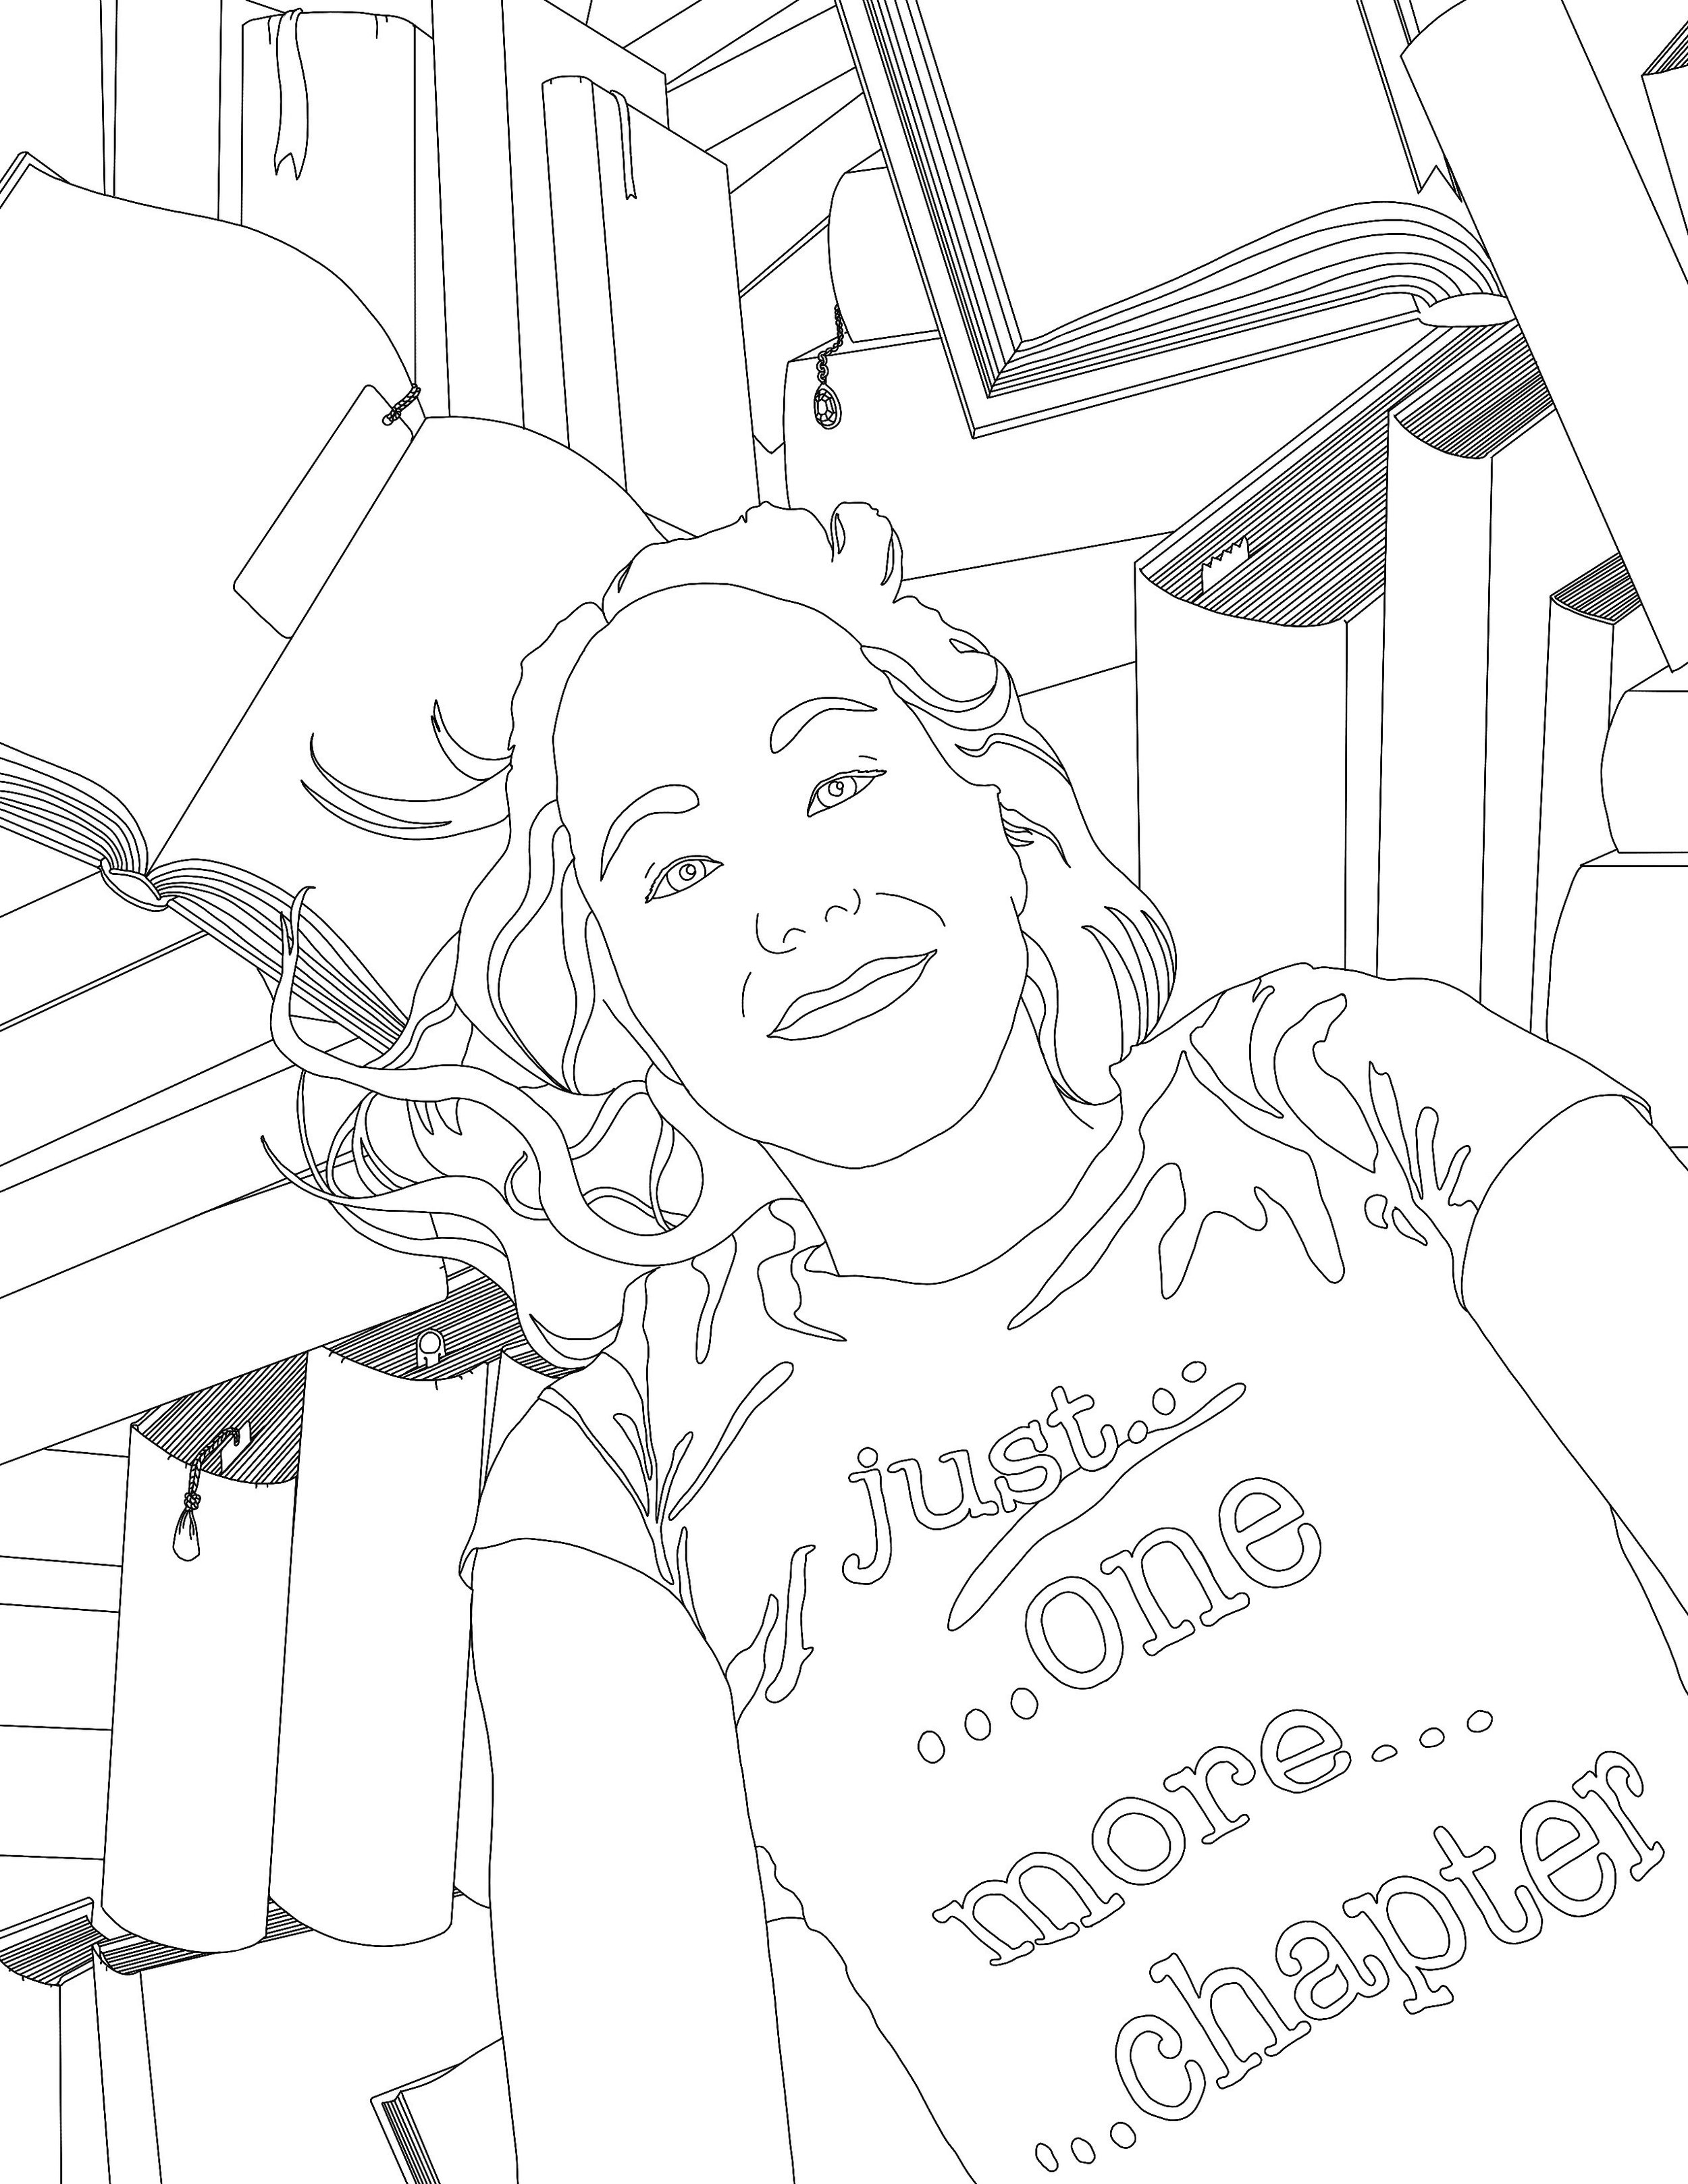 An example of a  C ustom coloring page. Simply send in a pic or two and/or choose a theme or phrase and I email you a completely custom, hand-drawn coloring page!